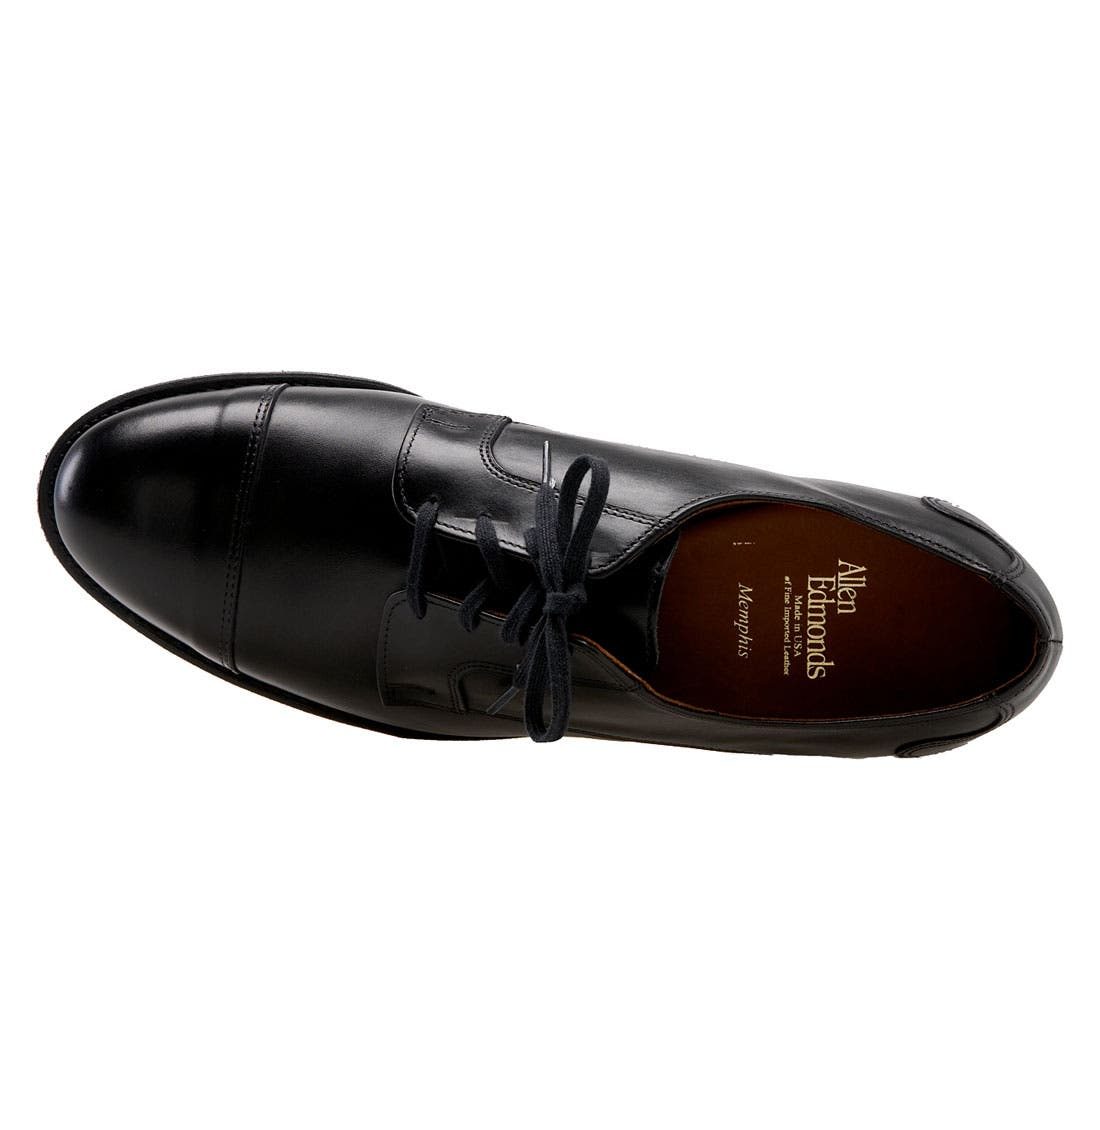 ALLEN EDMONDS,                             'Memphis' Cap Toe Oxford,                             Alternate thumbnail 3, color,                             001